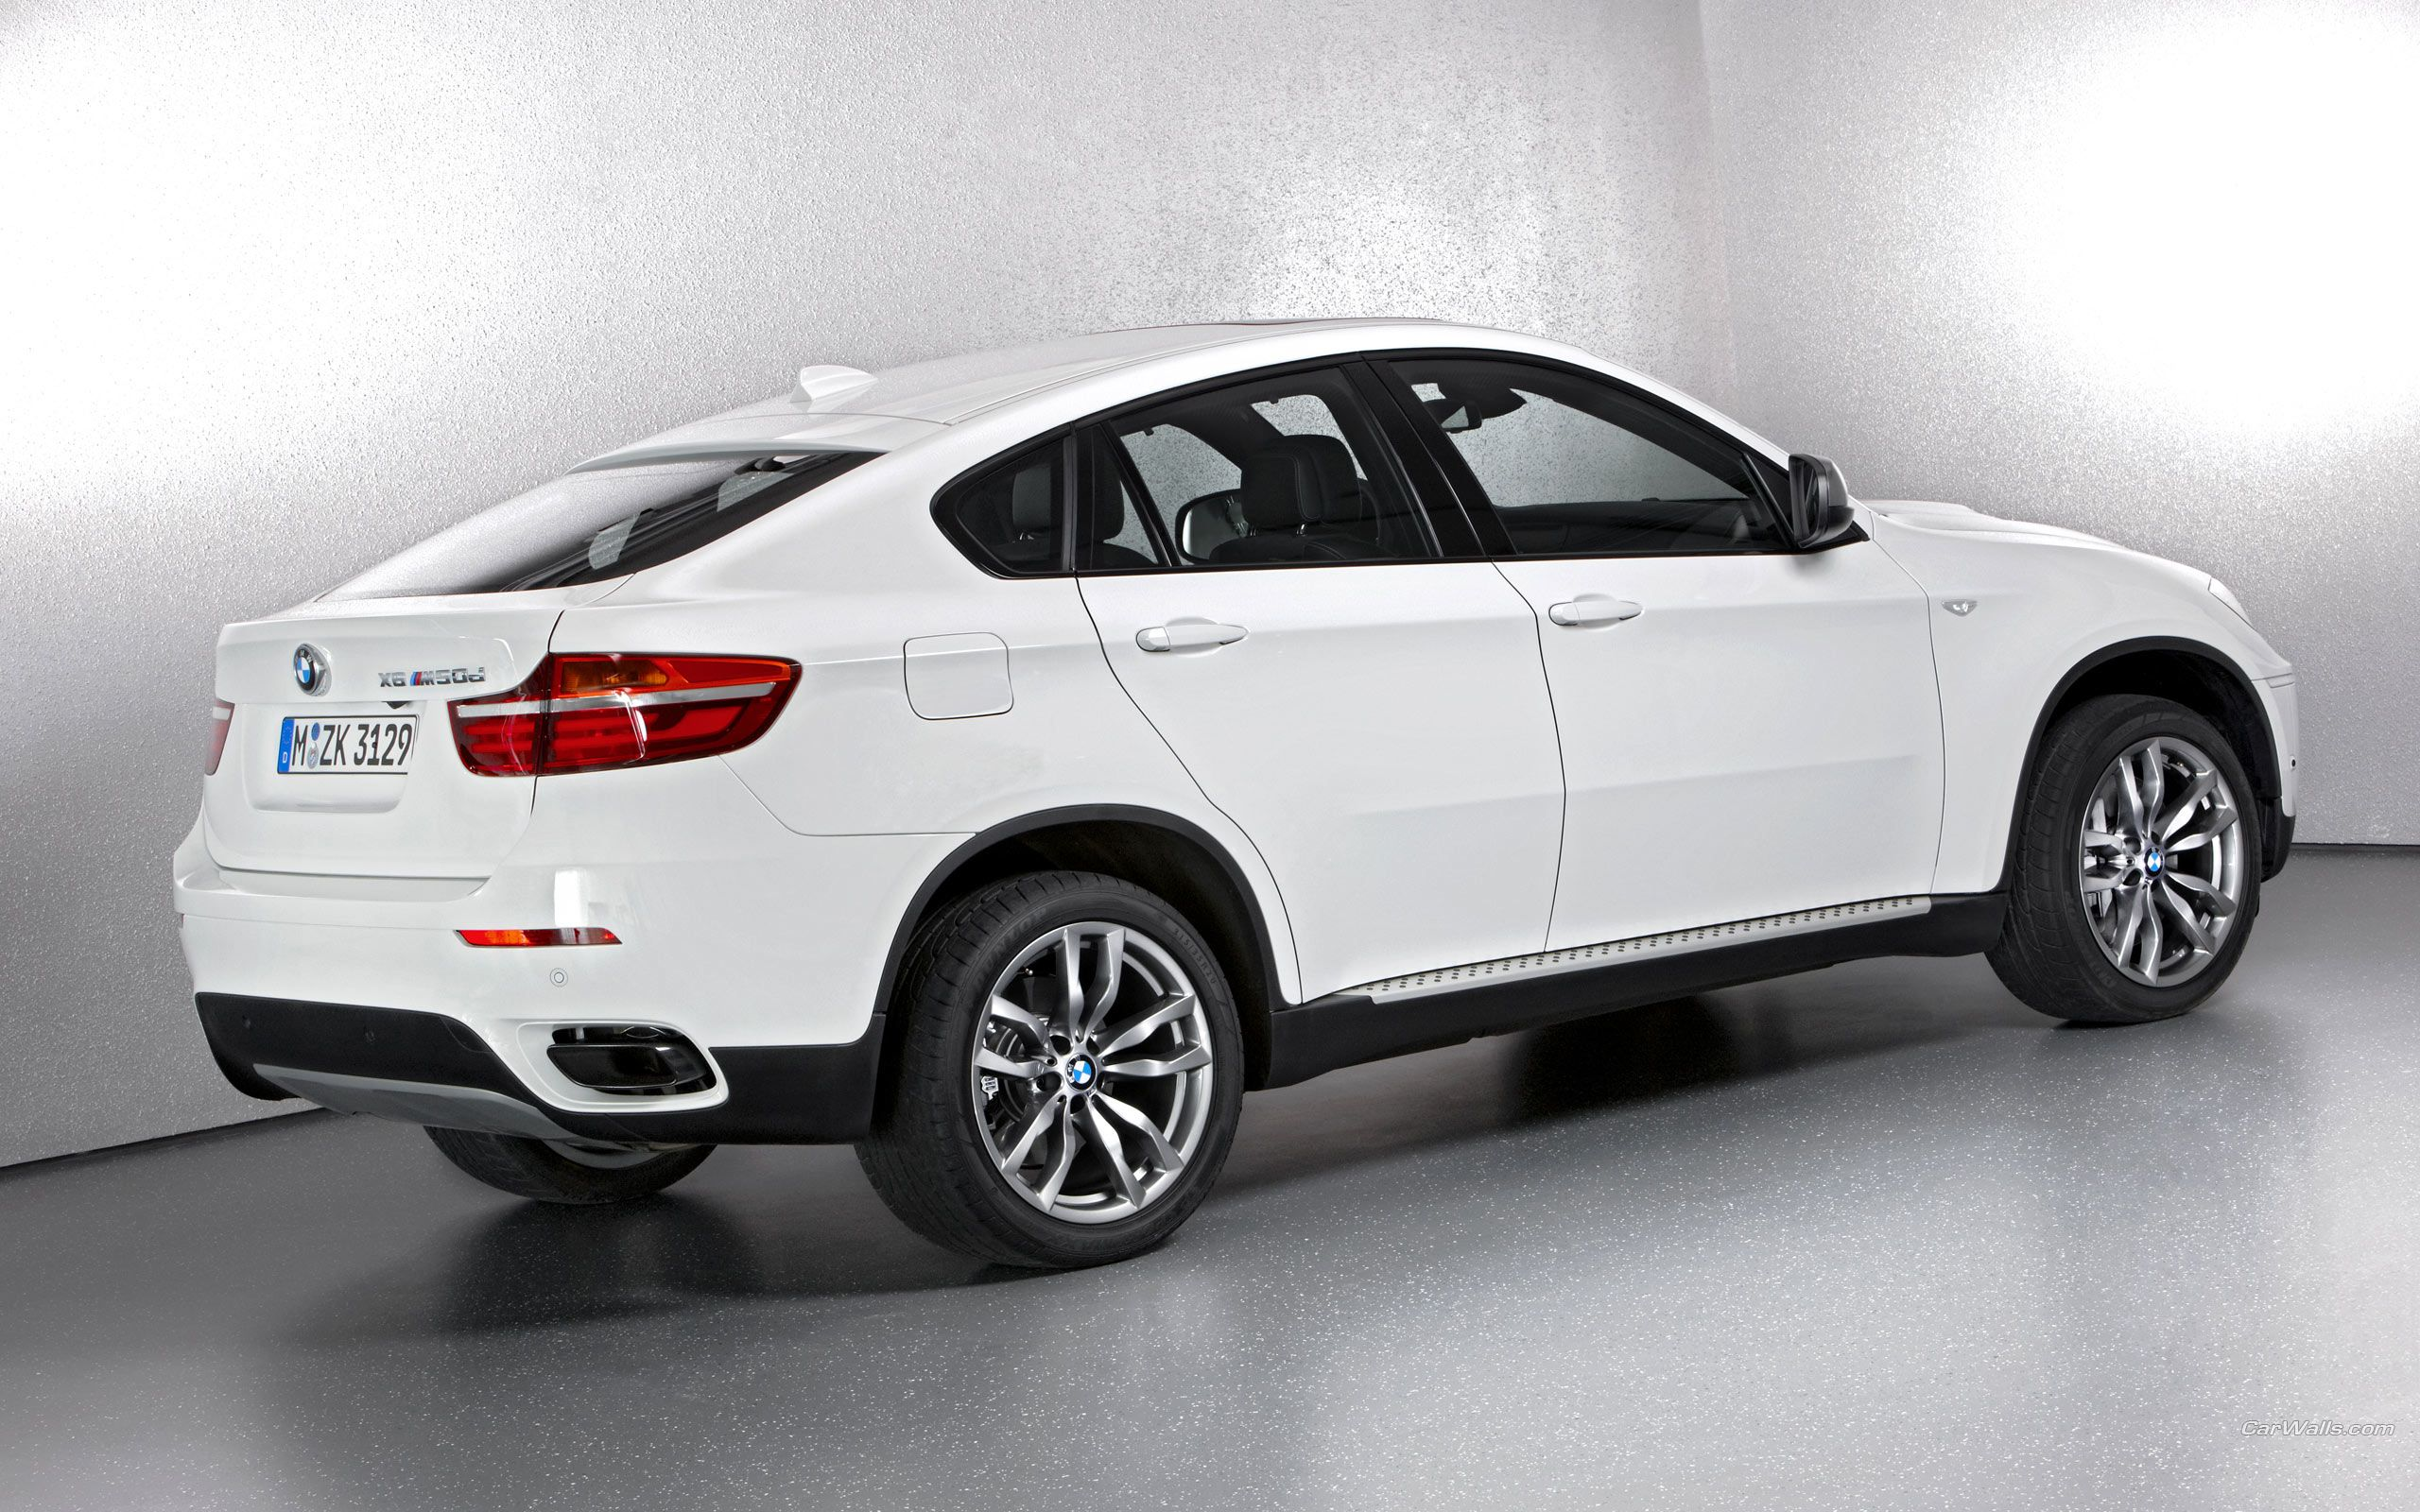 bmw x6 white m 2 Pictures  Car  Pinterest  Bmw x6 BMW and Cars